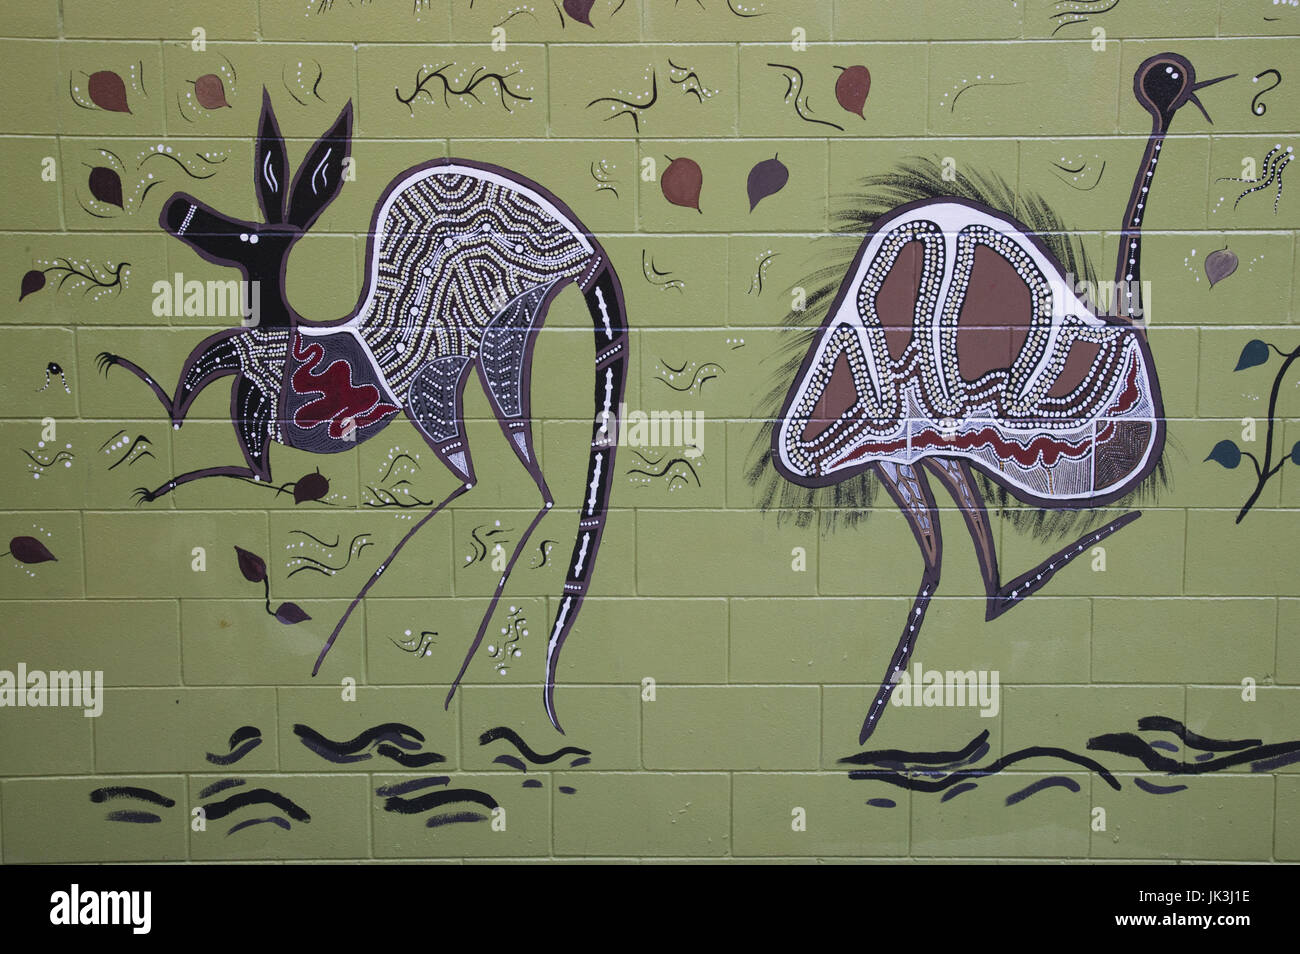 Australia, Queensland, North Coast, Kuranda, Aboriginal Wall Art, Stock Photo